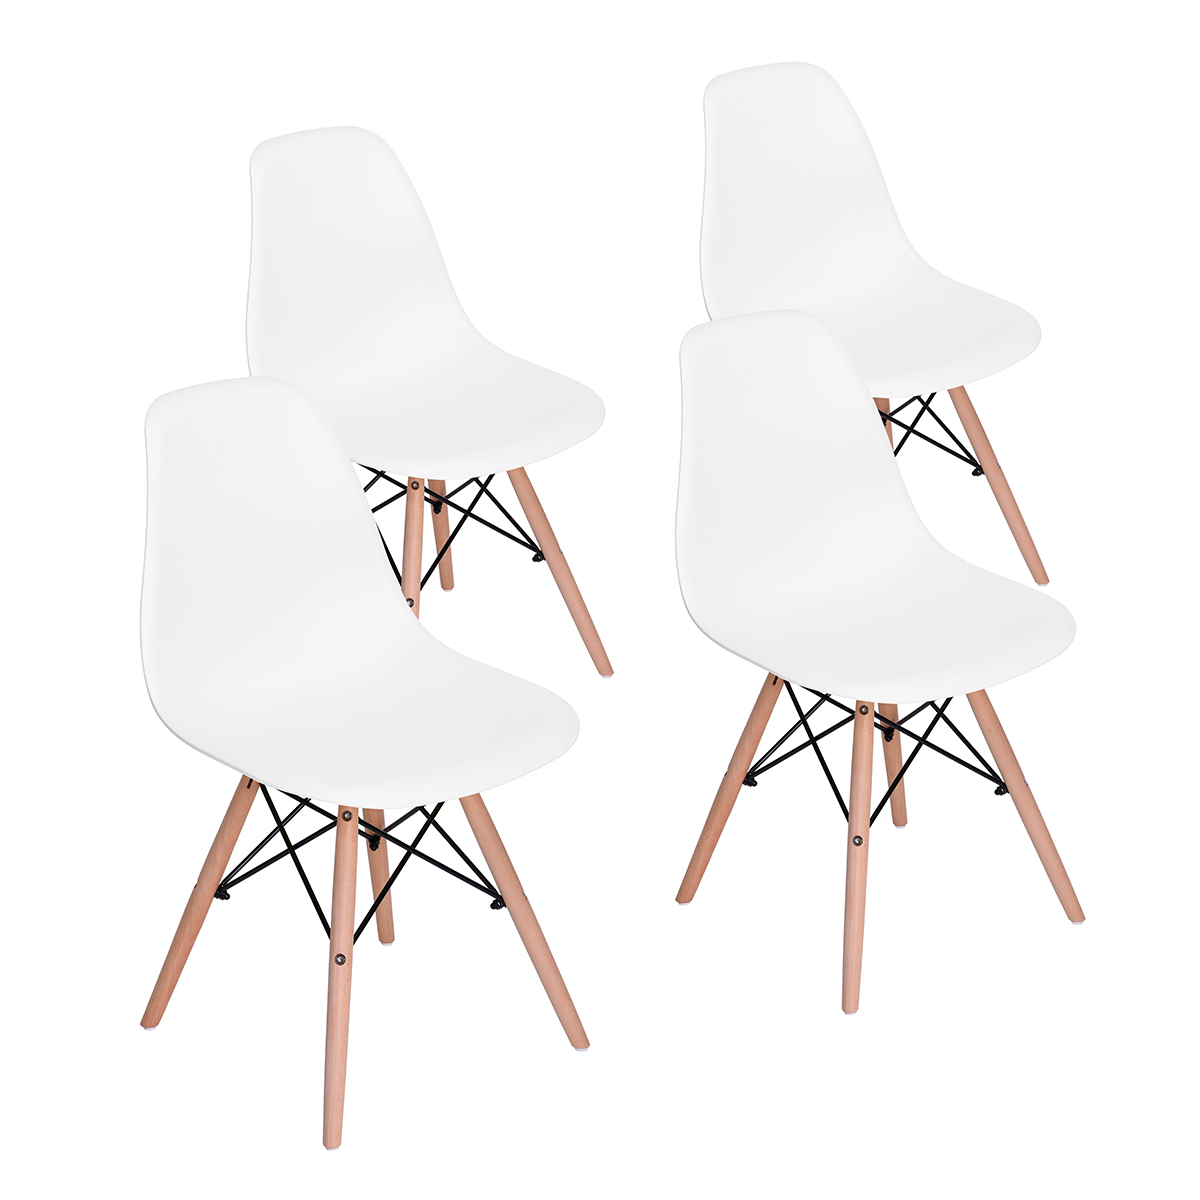 Set Of 4 Kitchen Chairs: Set Of 4 Modern Kitchen Dining Chair White PP Side Lounge